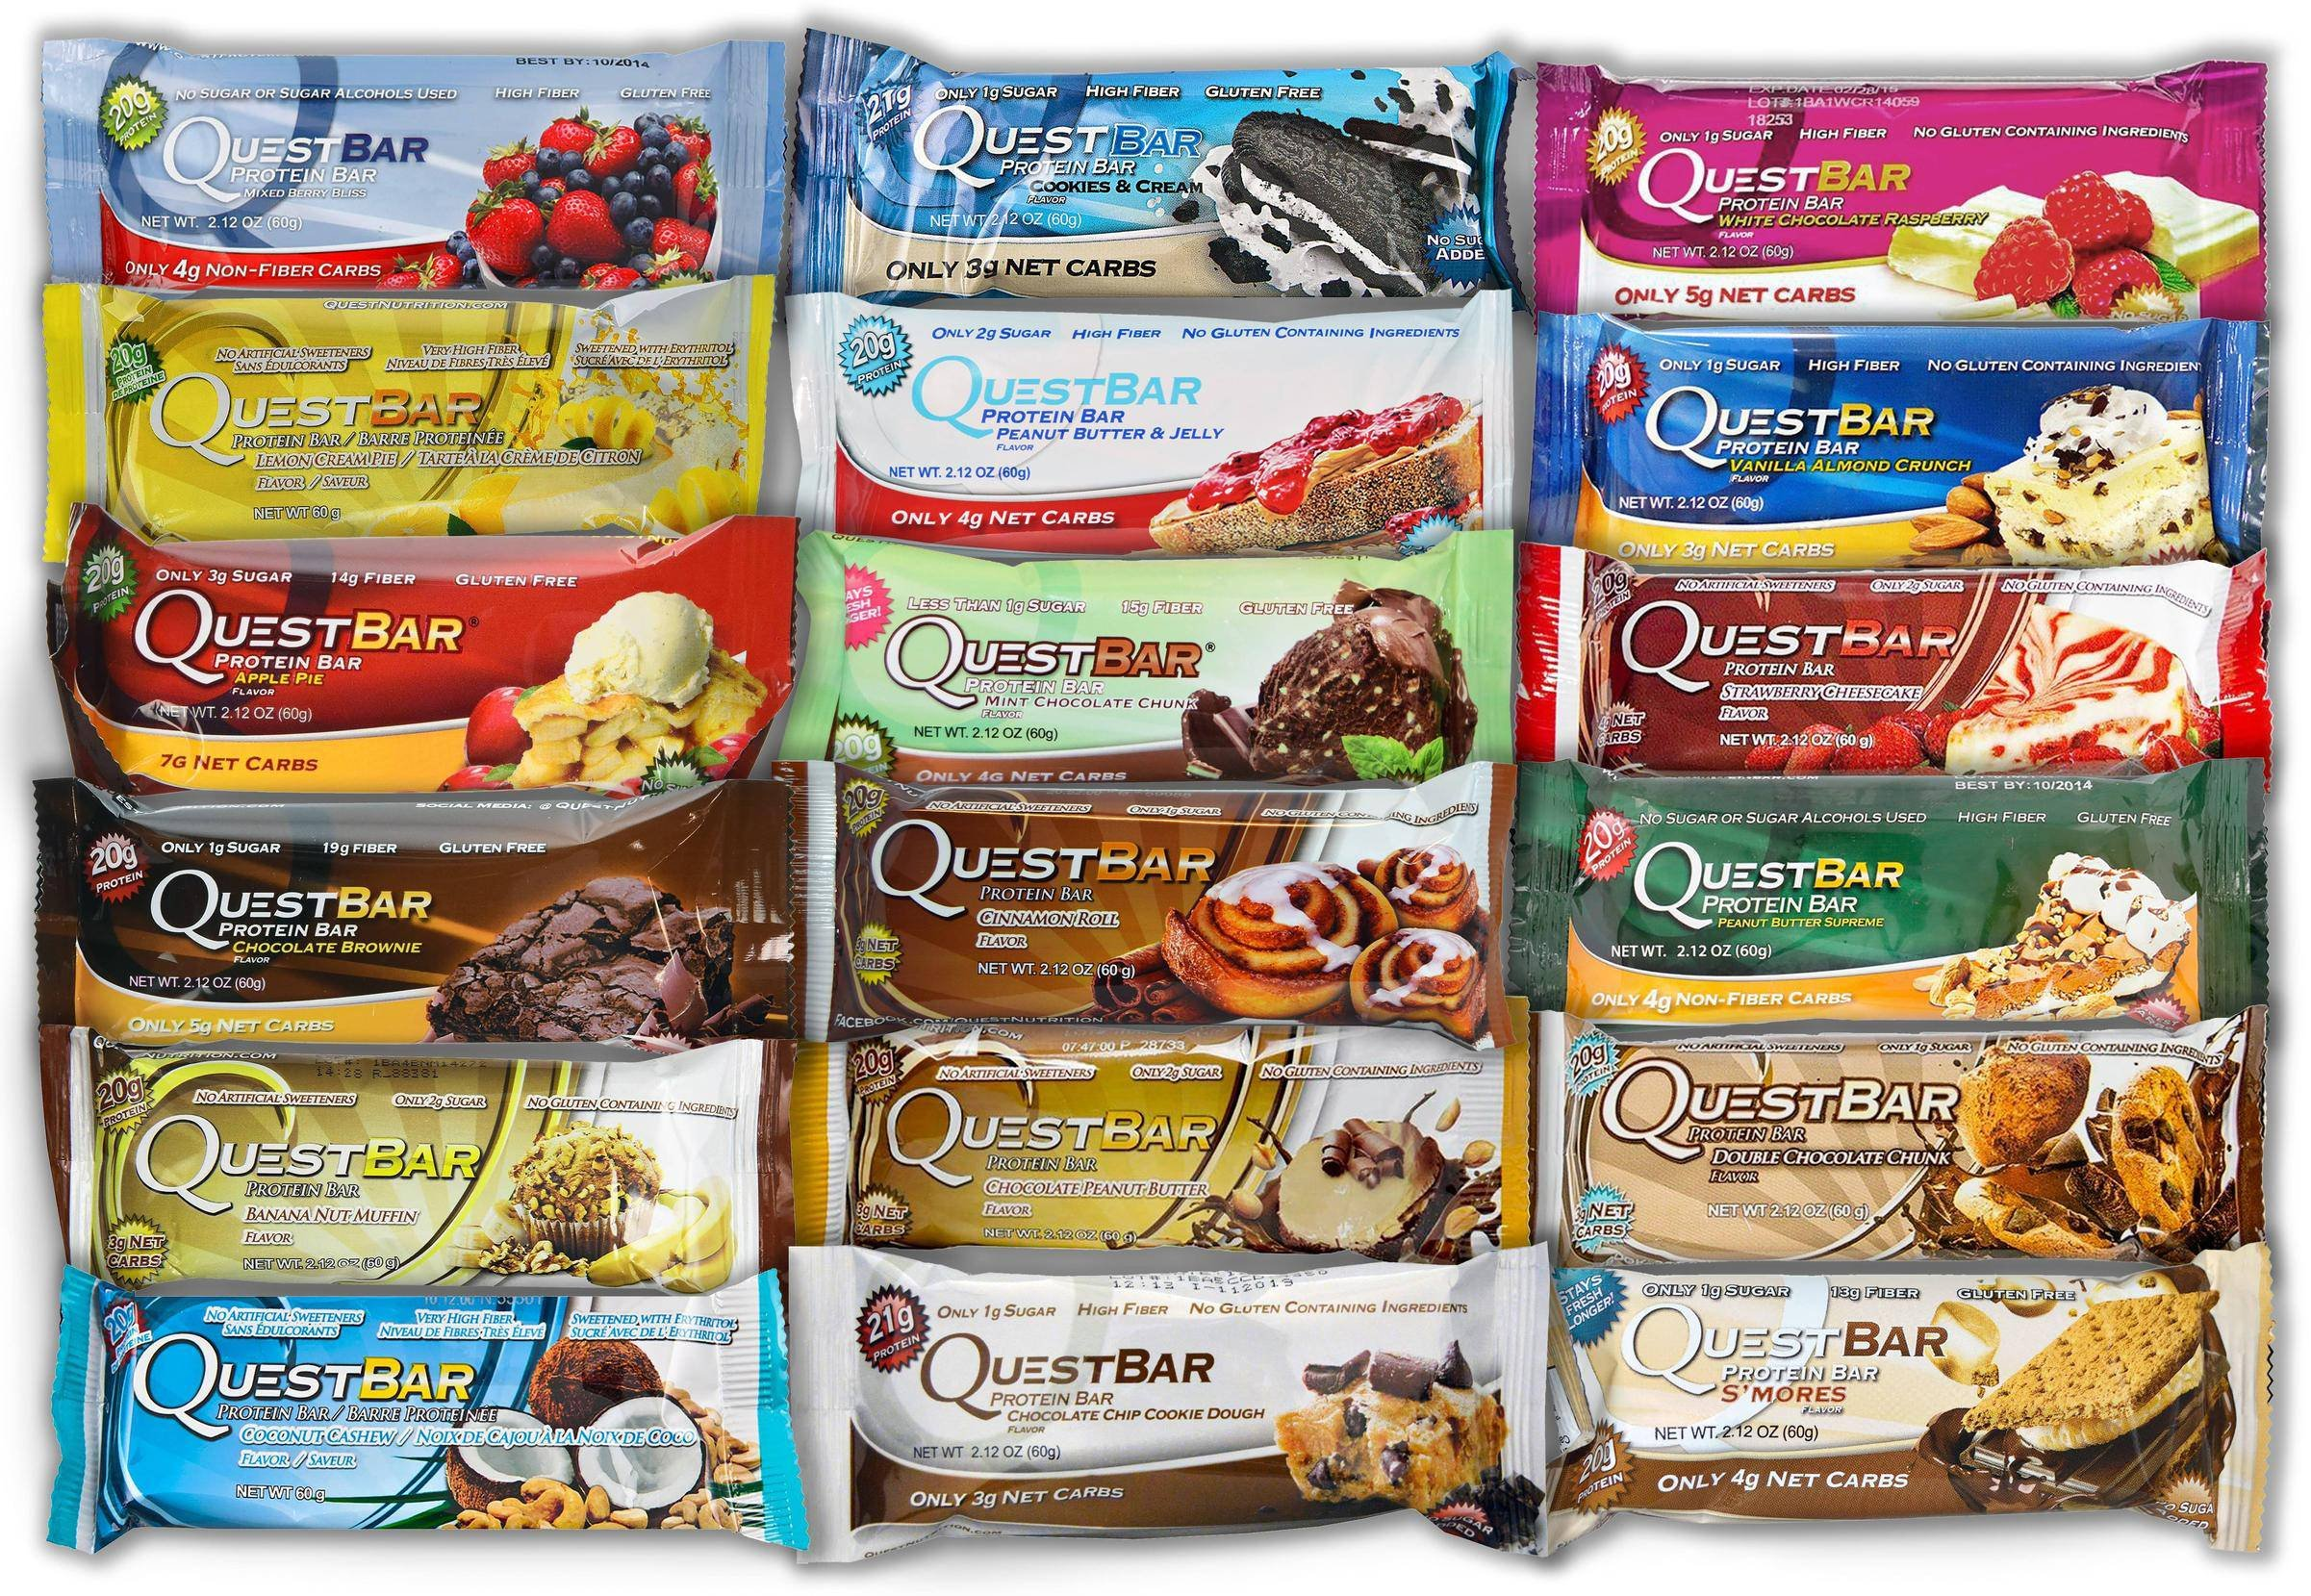 Quest Nutrition Bar Variety Bundle PbjWTc, 18 Bar Variety Pack